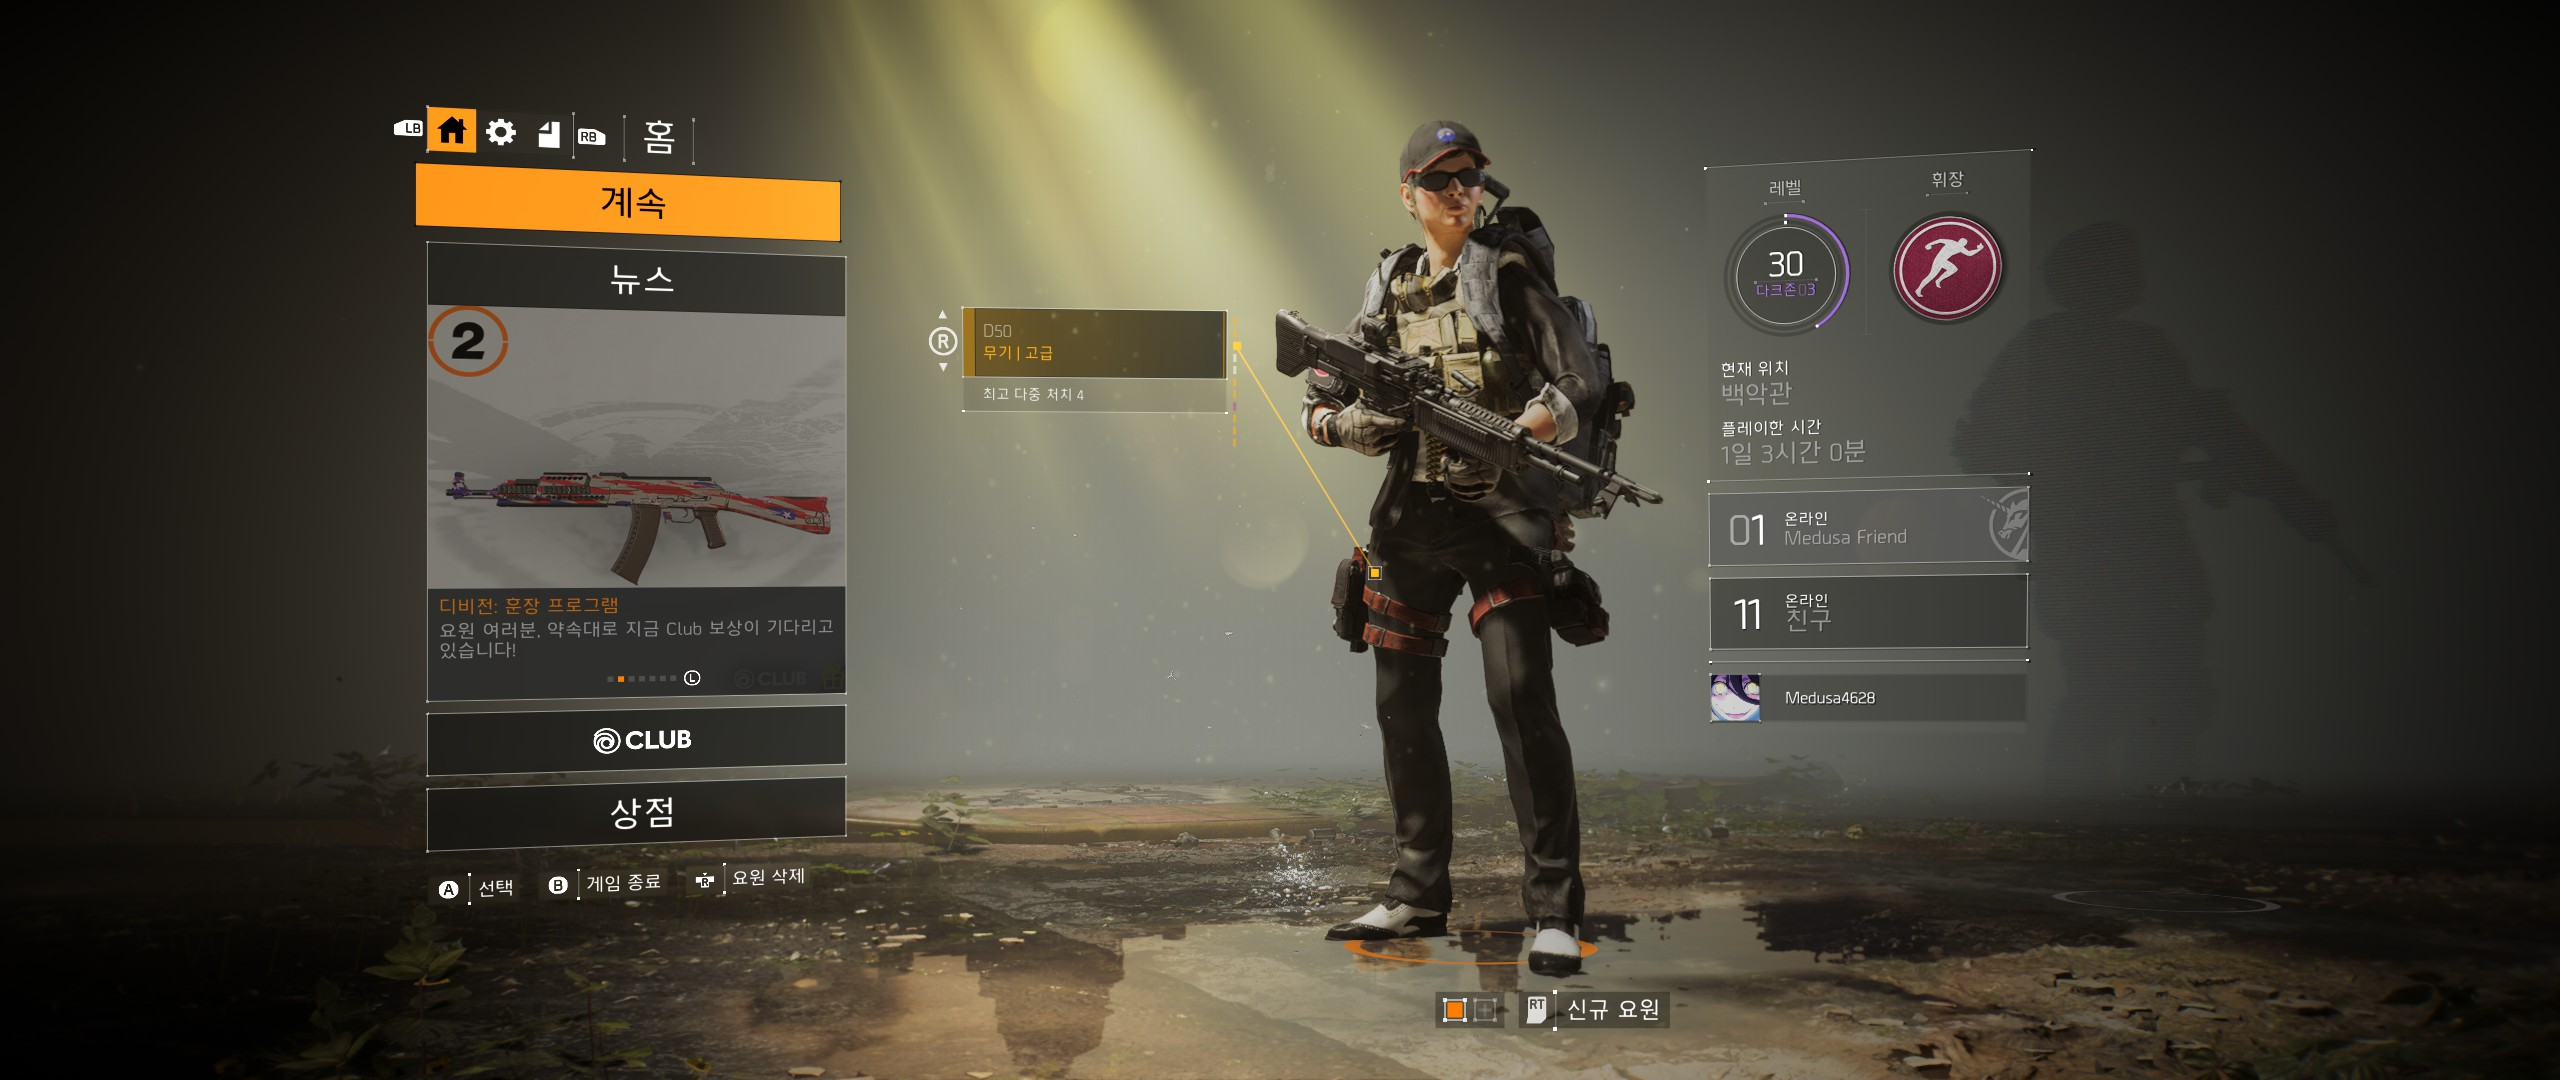 Tom Clancy's The Division® 22019-3-17-10-51-26.jpg